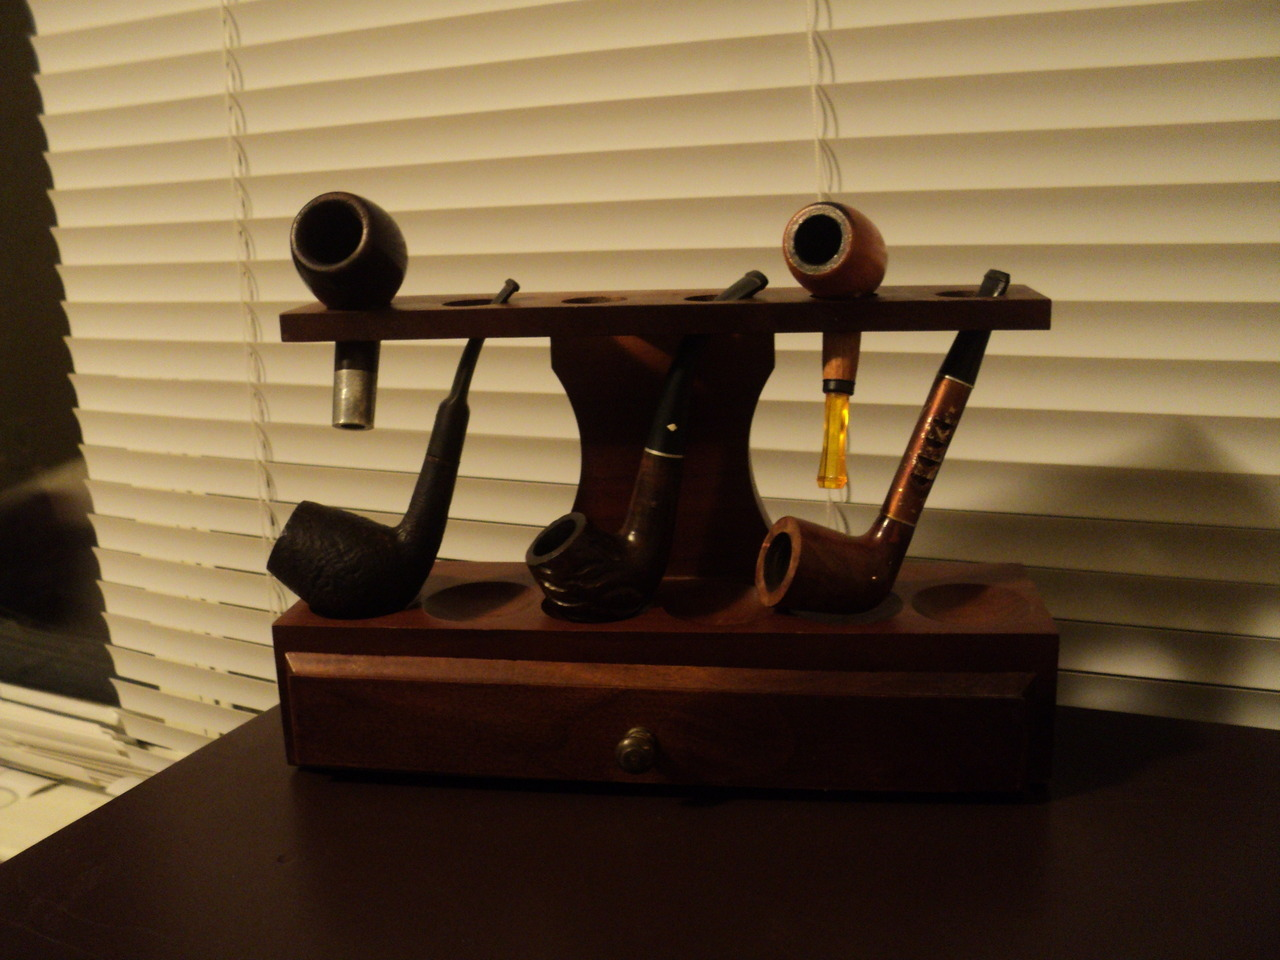 "sharpbriar:  My new pipe collection.  Got a great deal on some estate pipes and a stand. The bowl on the left is a Kaywoodie Ninety Fiver that the ""drinkless"" stem broke on.  Not real sure what to do with it now. From left to right: Kaywoodie mentioned, Bjarne Rustic handmade in Denmark, Dr. Gabow Duke, Little Cherry Thang, Medico Ventilator."